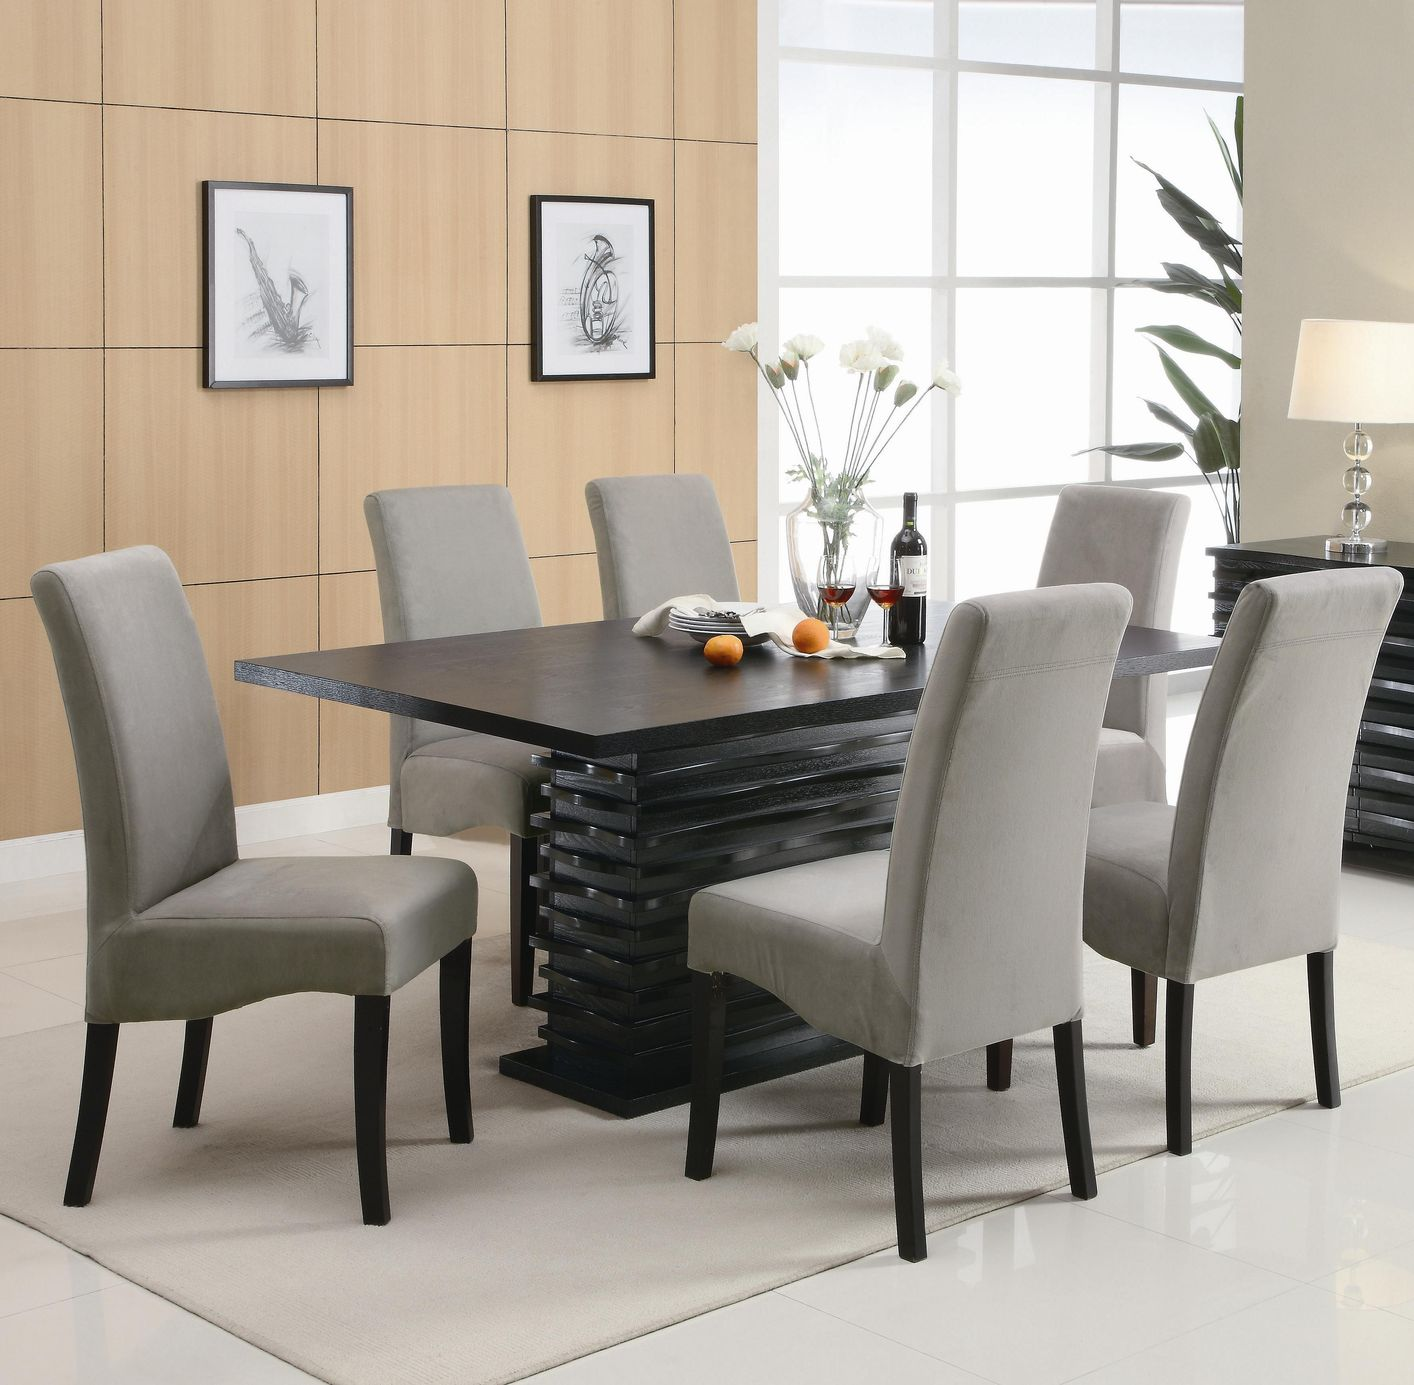 Stupendous Green Wood Table Set Presidents Day Furniture Sales Nashville Presidents Day Furniture Sales Stanton Black Green Wood Table Set Stanton Black houzz-02 Presidents Day Furniture Sales